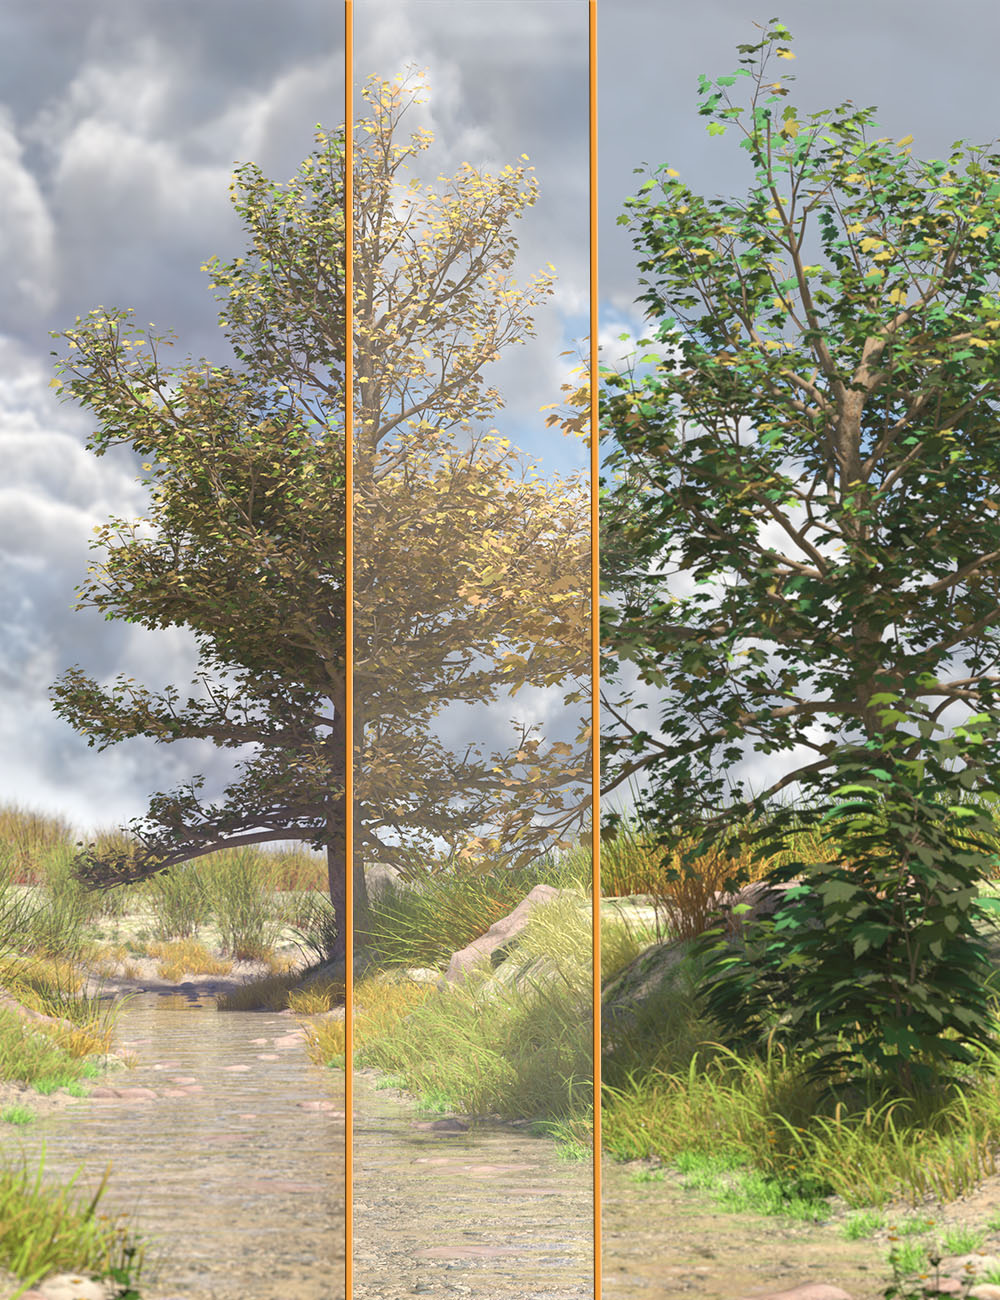 The Greenwood Vol 1 Sycamore Trees by: MartinJFrost, 3D Models by Daz 3D